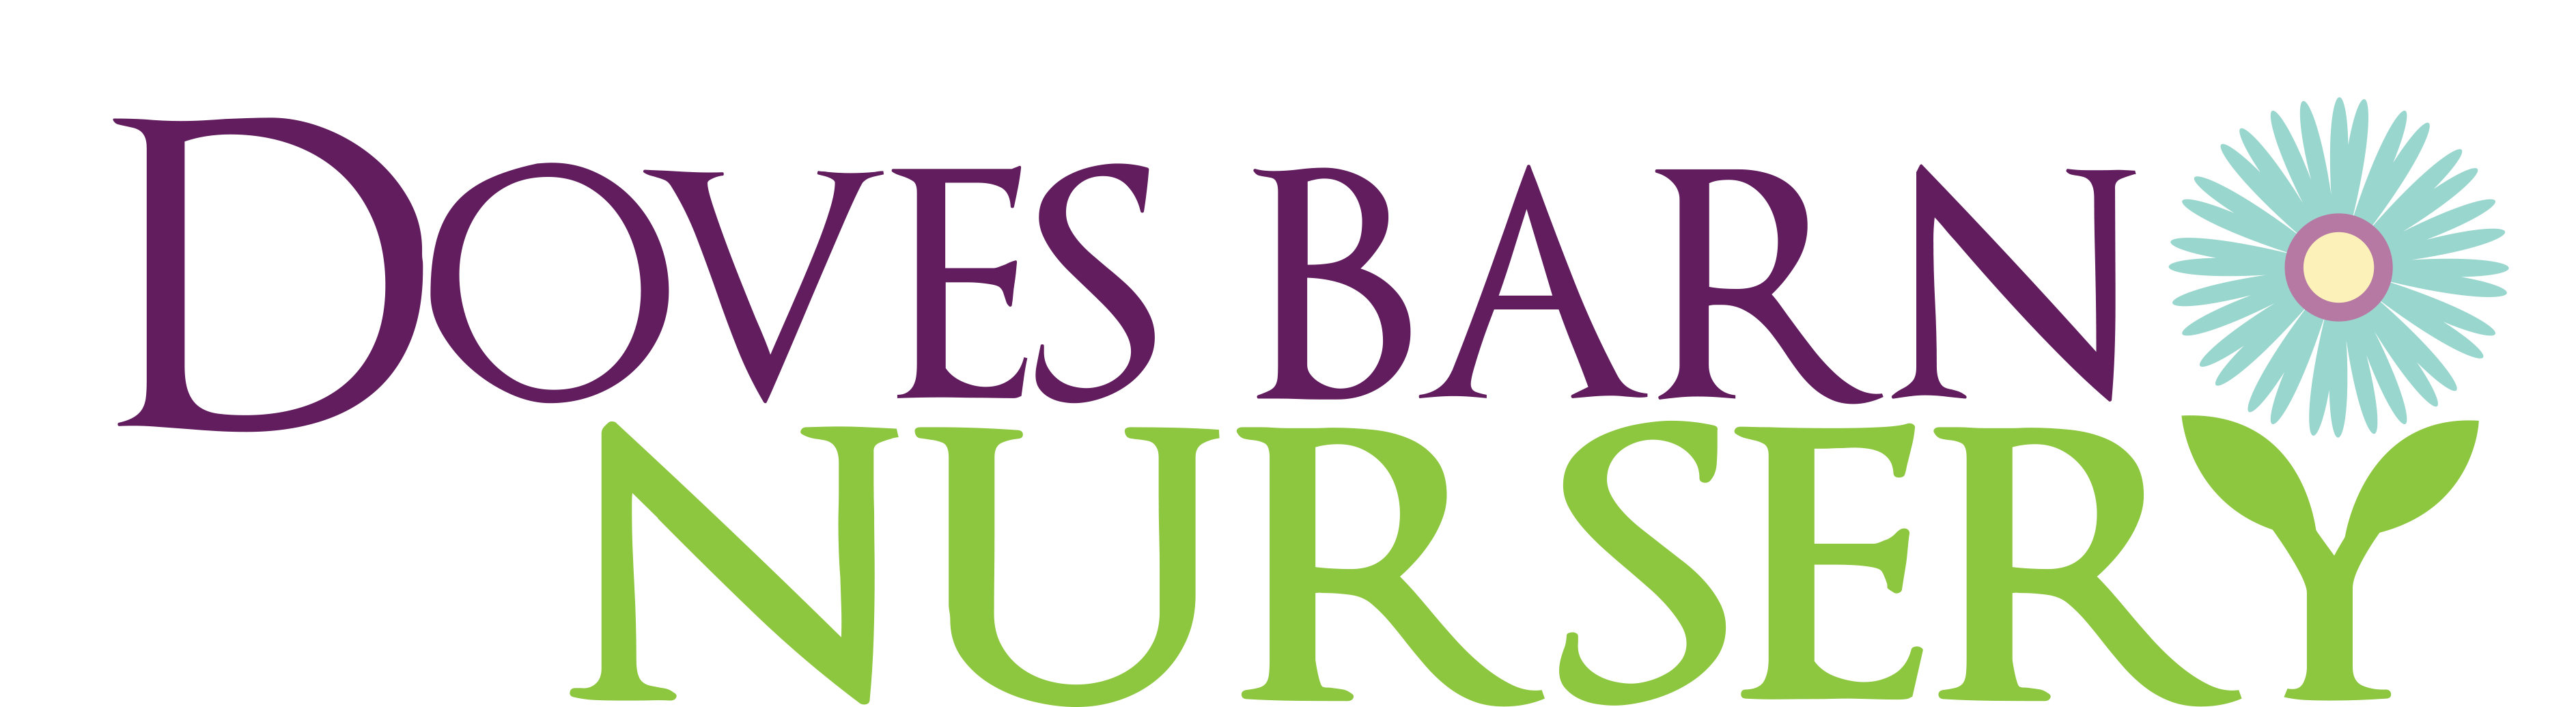 Doves Barn Nursery